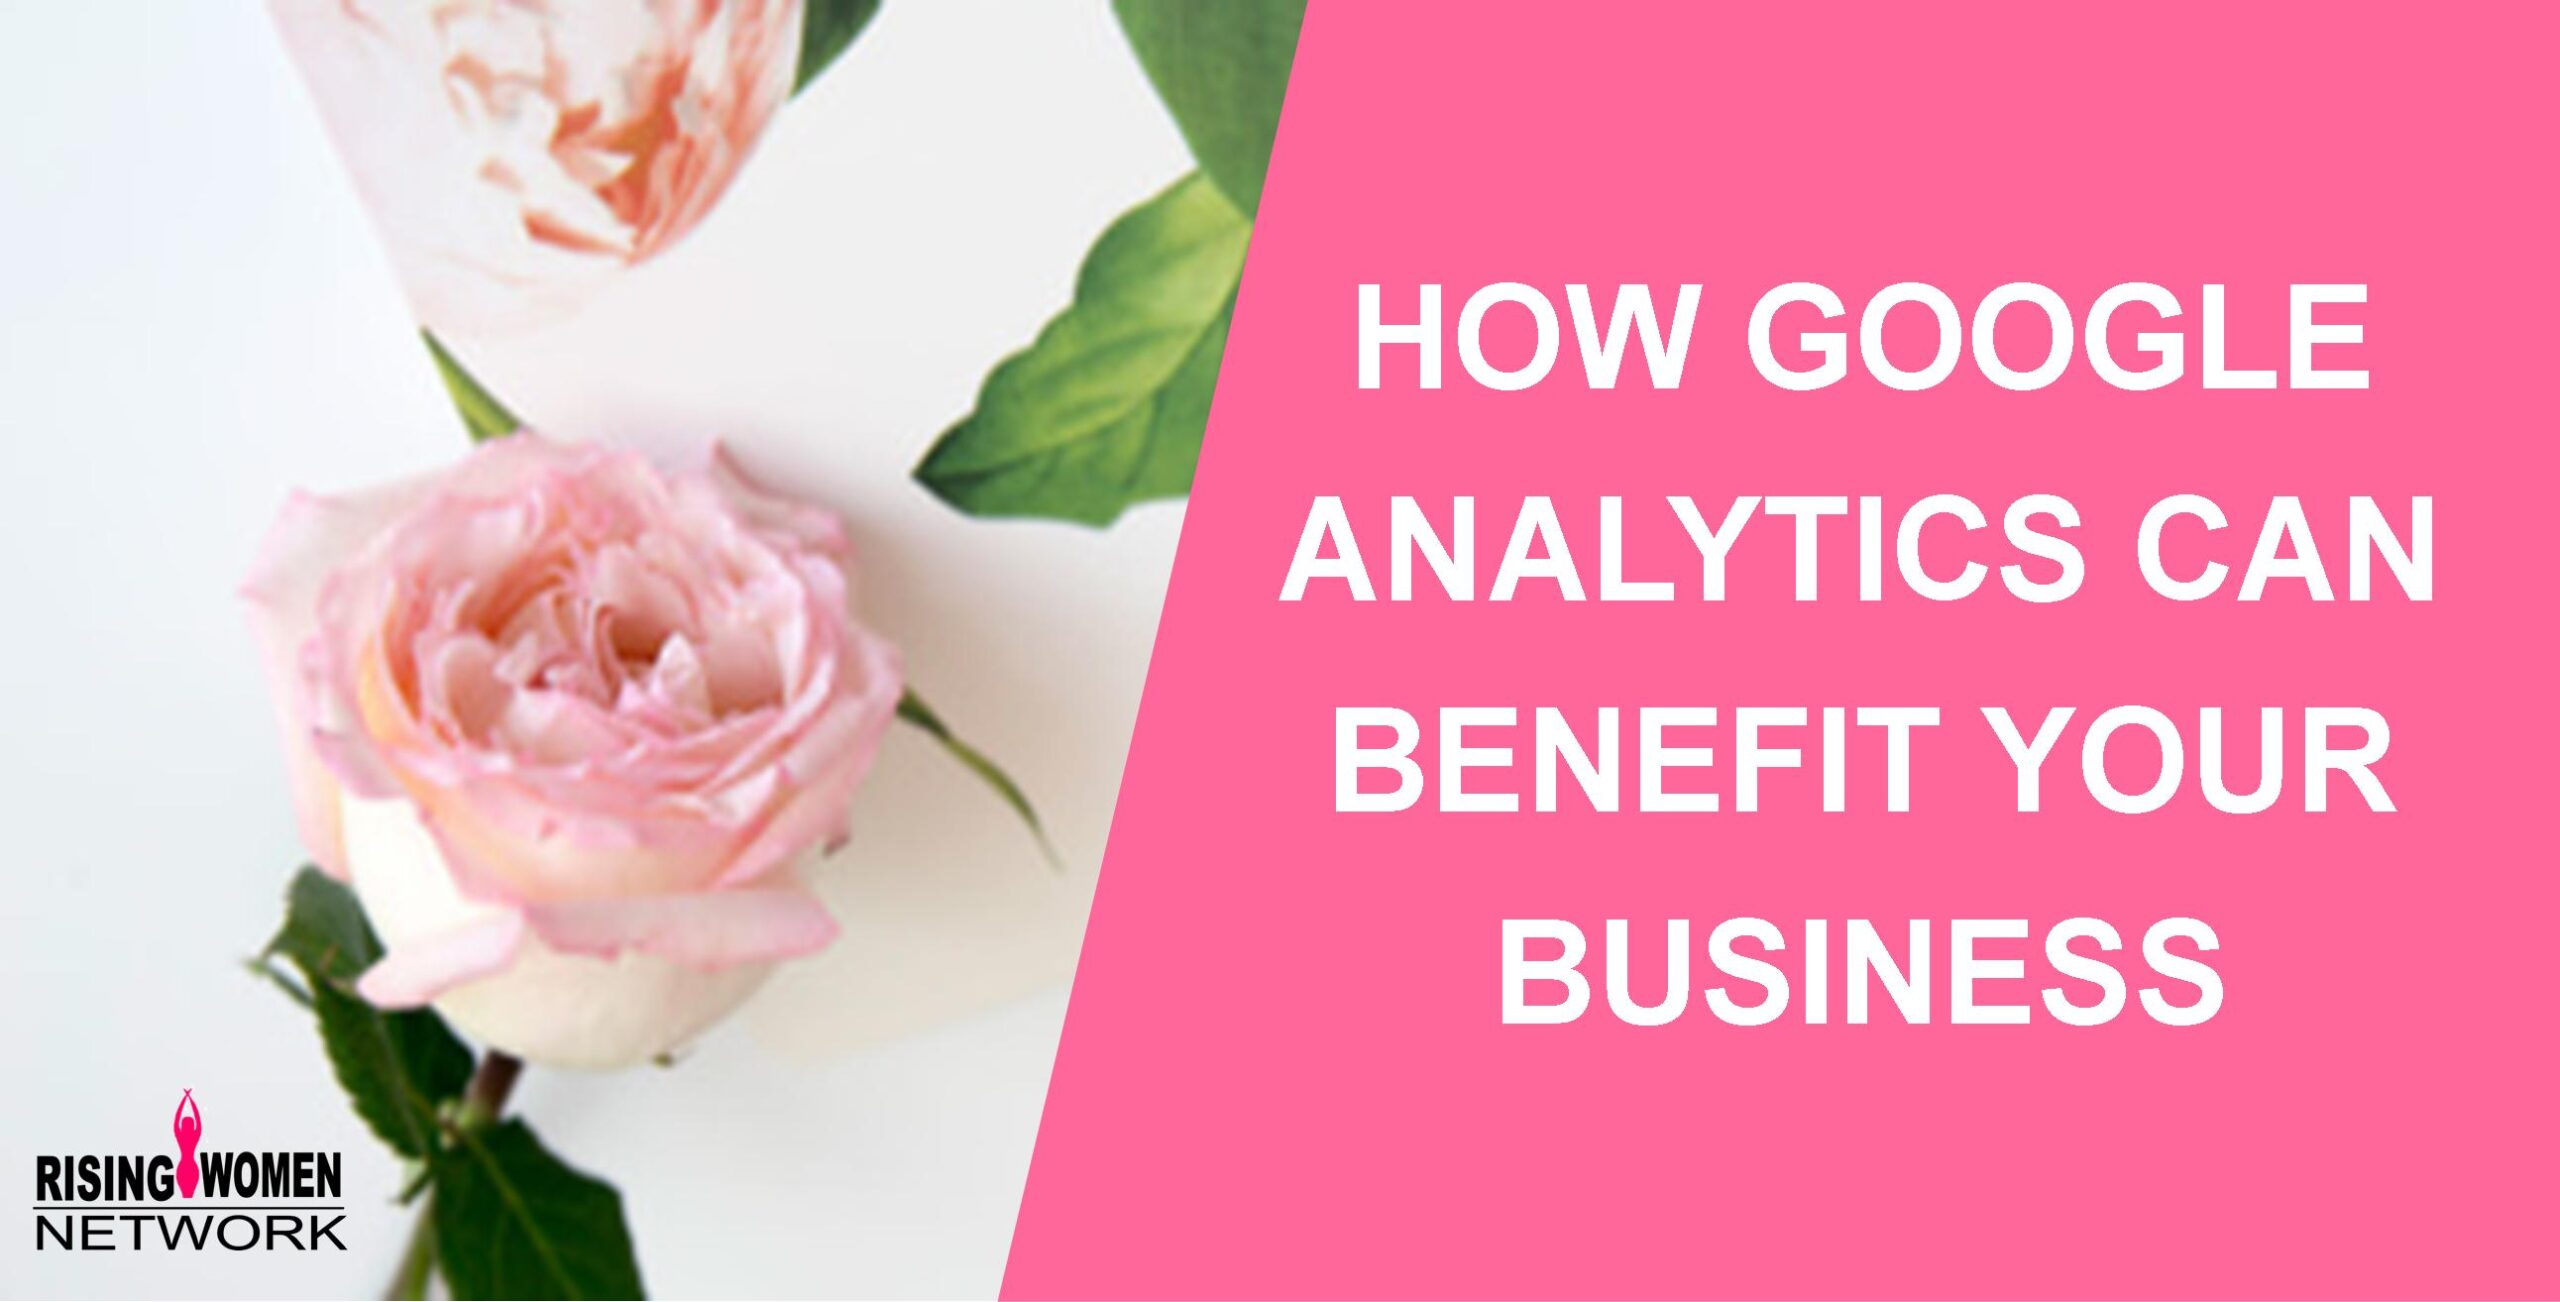 Google Analytics is key because it provides valuable insights about your traffic. With Google Analytics we can figure out where your traffic is coming from and what they do once they land on your site, this all helps us figure out how to get more traffic!